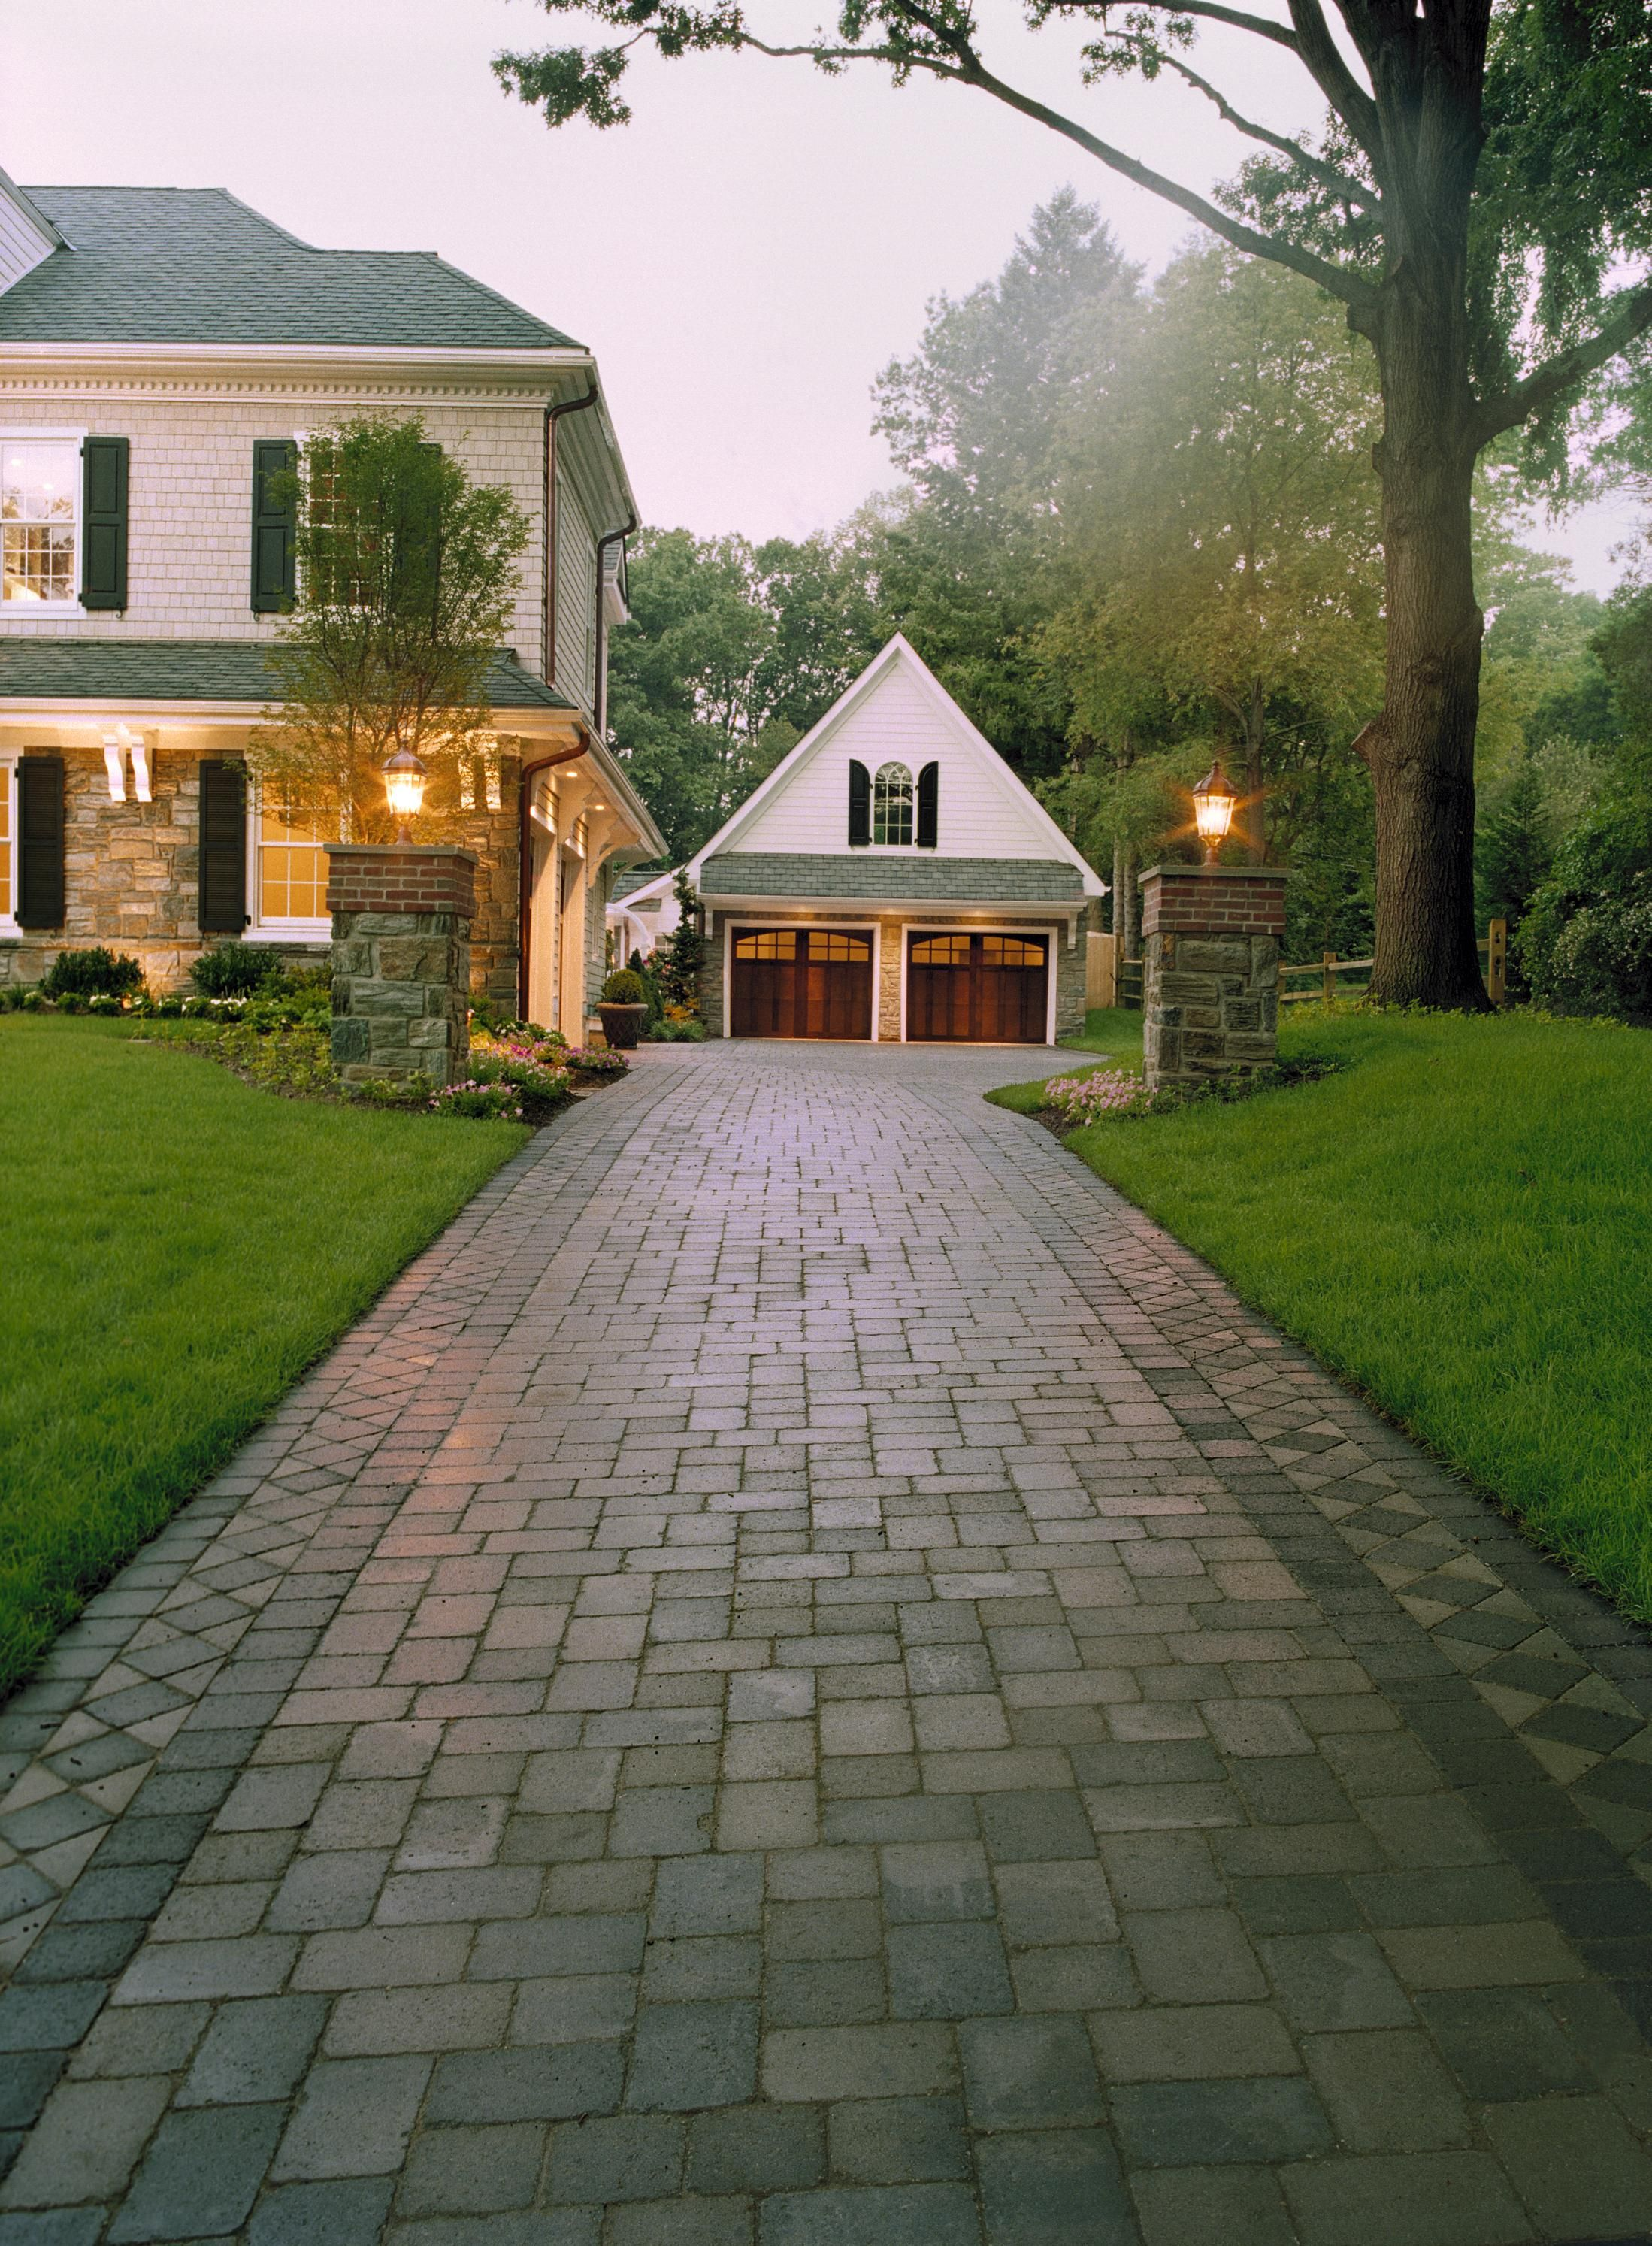 paver driveway love it love this type of style of house cozy and